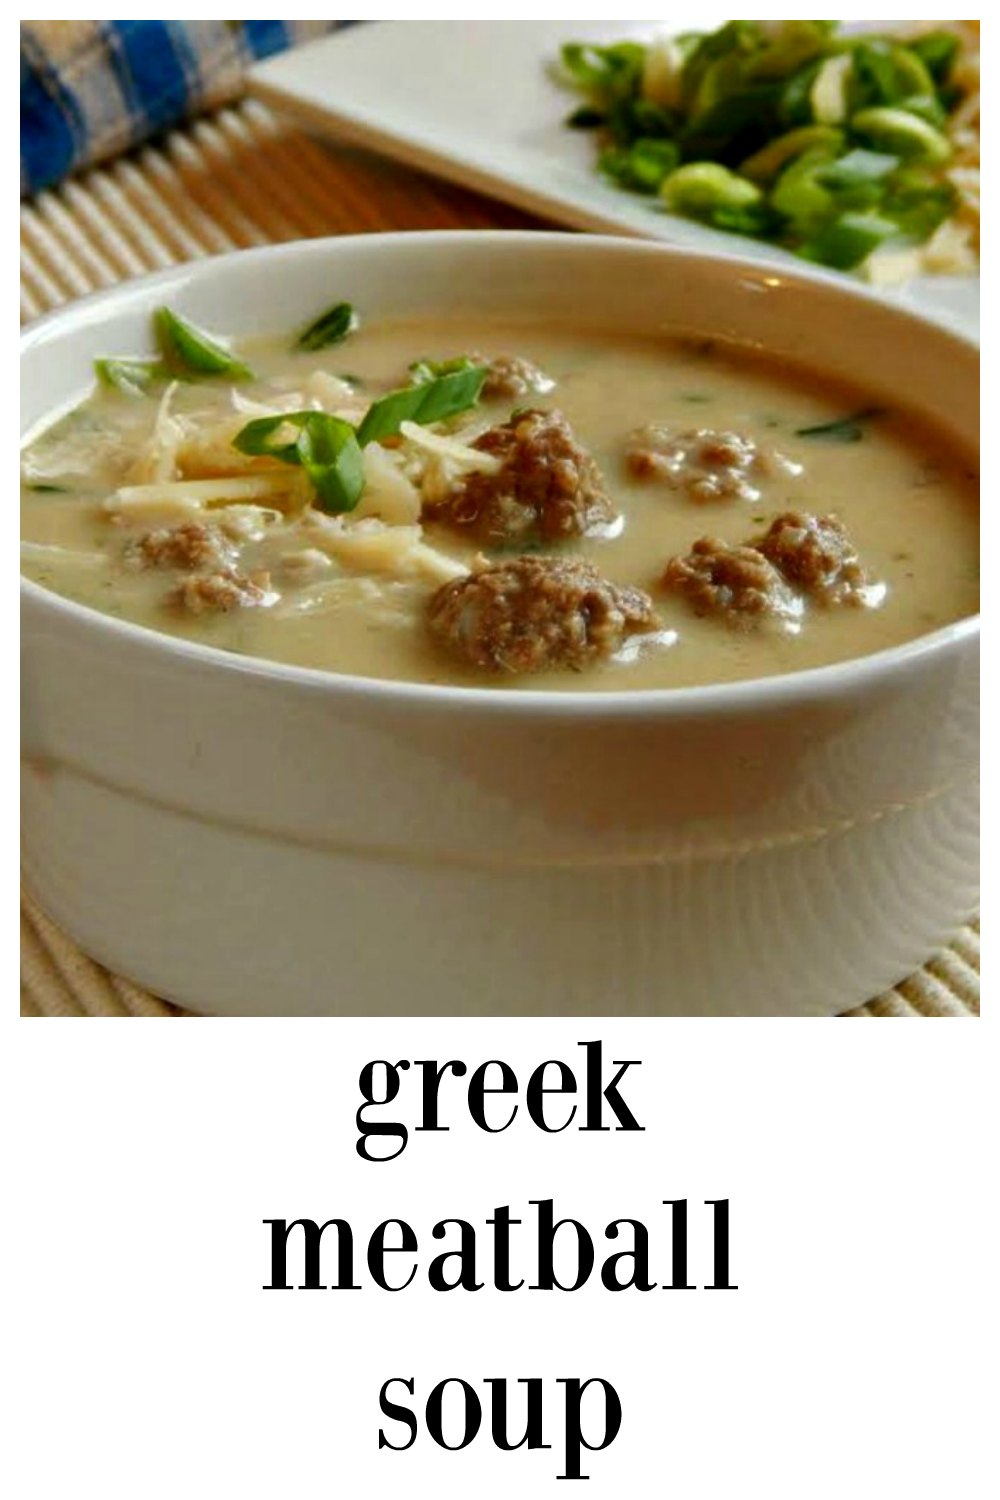 Greek Meatball Soup - so different, tiny little meatballs made of beef, lamb or a combination in a creamy parmesan broth. Lots of herbs make it fresh and a scoop makes short work of the meatballs. Incredibly good & such a nice change of pace! Comfort Food at it's best! #GreekSoup #GreekMeatballSoup #GreekMeatballs